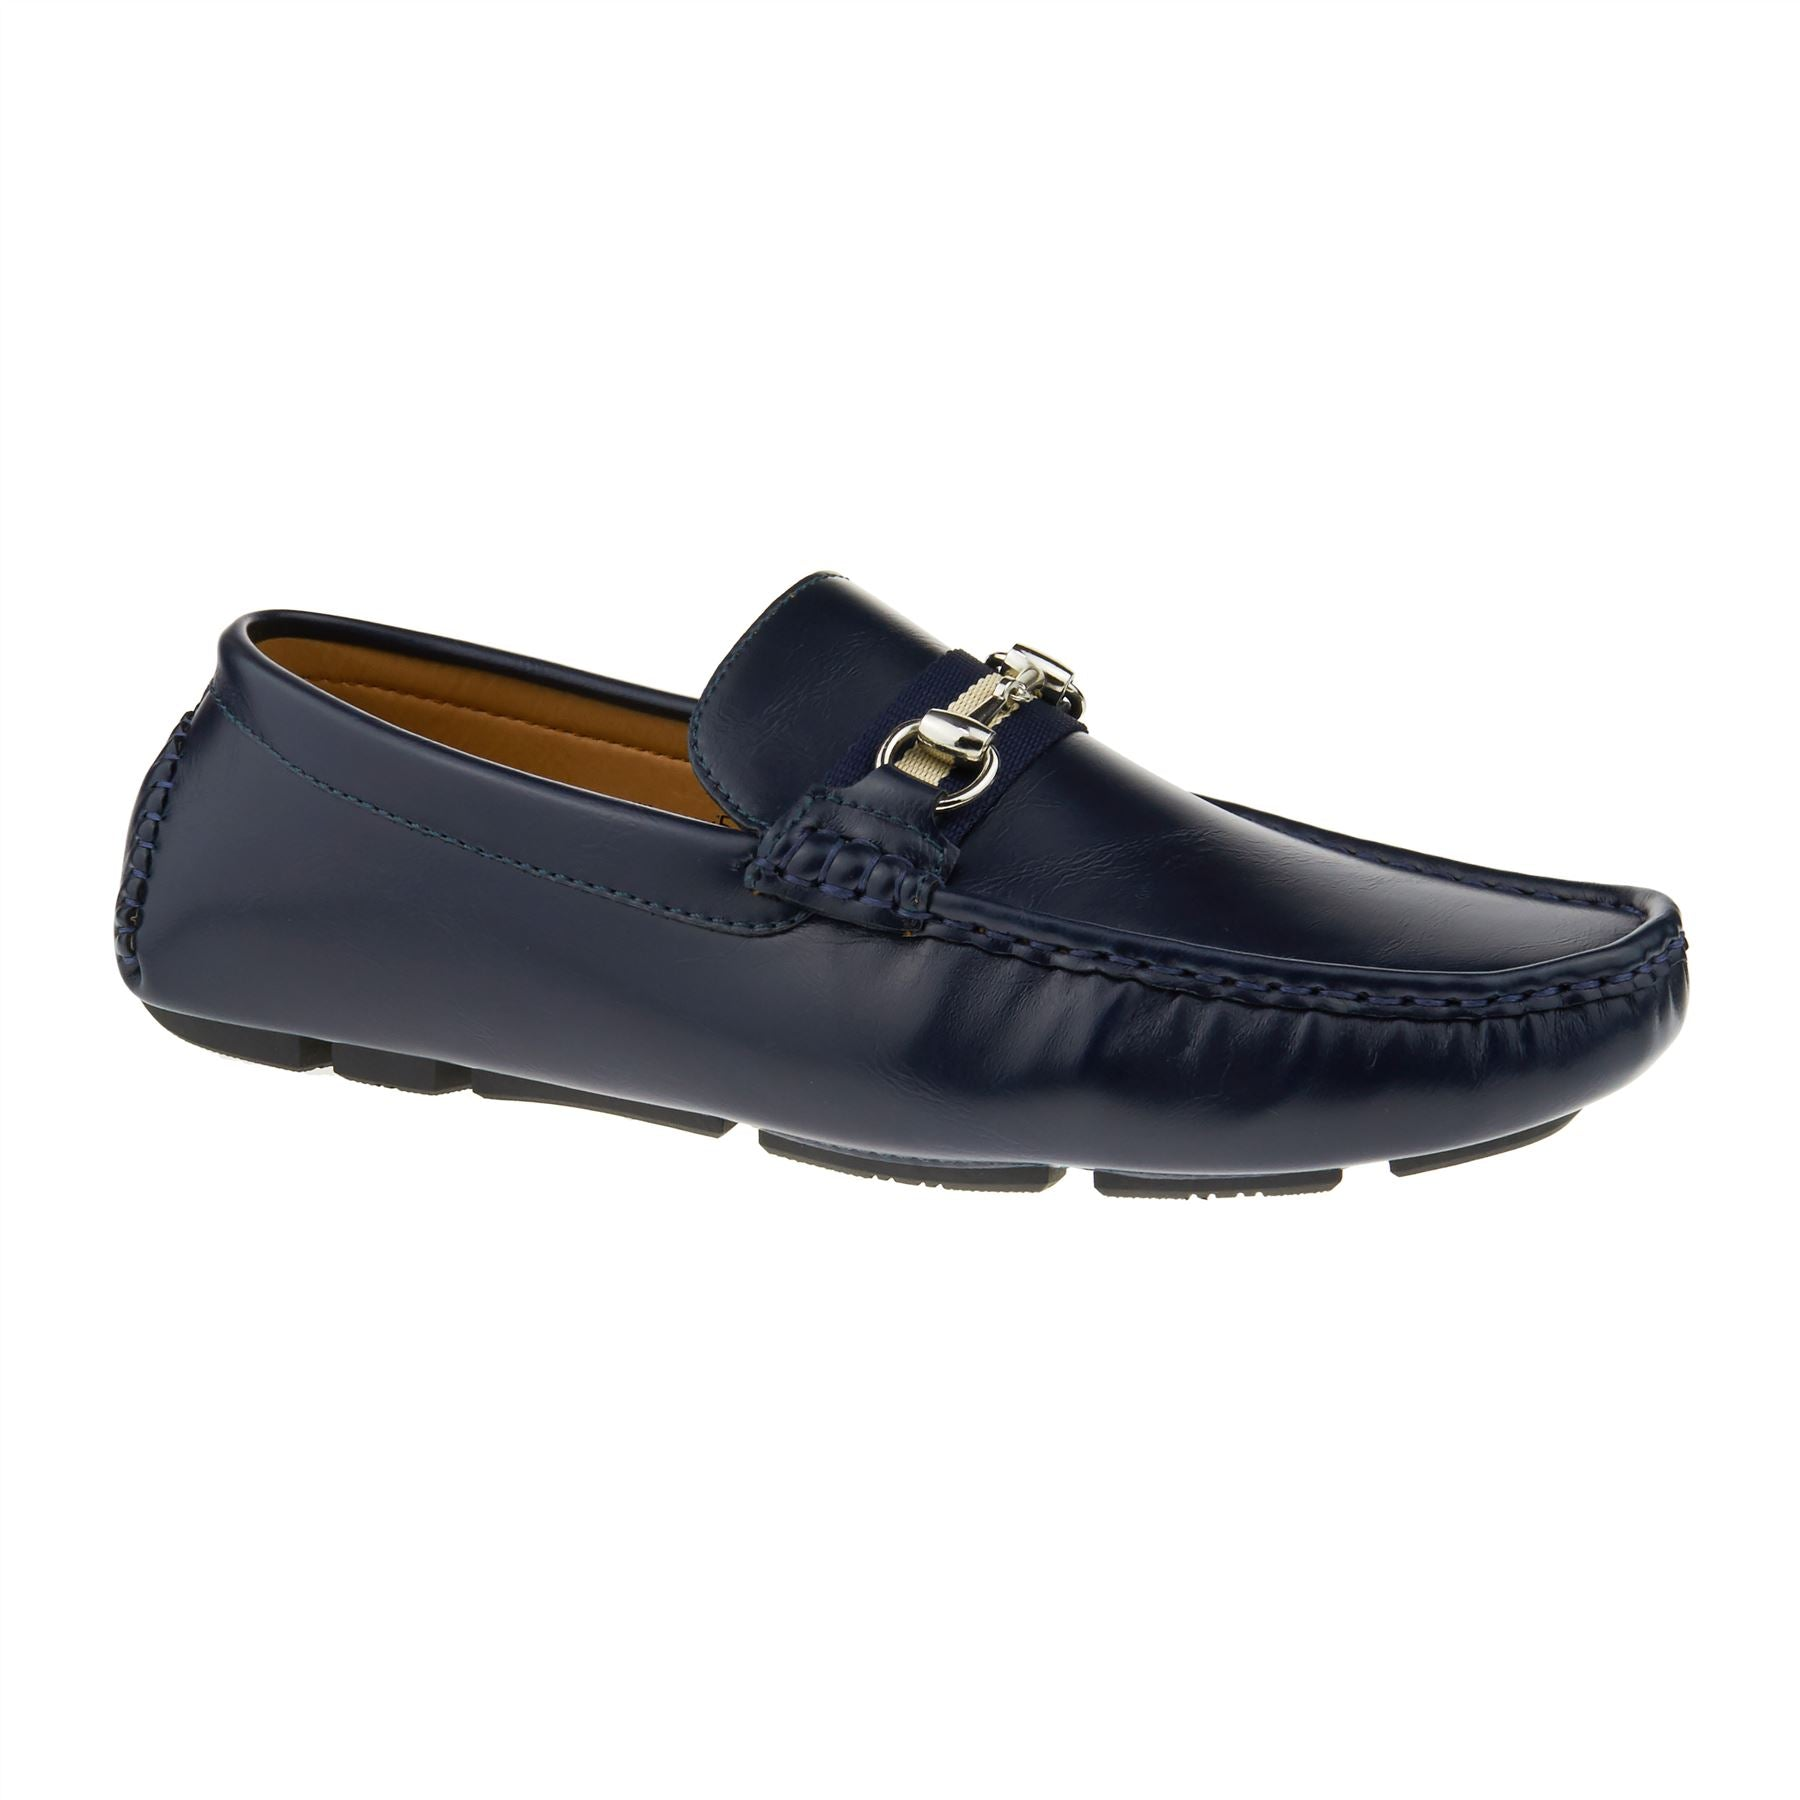 Navy Horsebit Driving Shoes